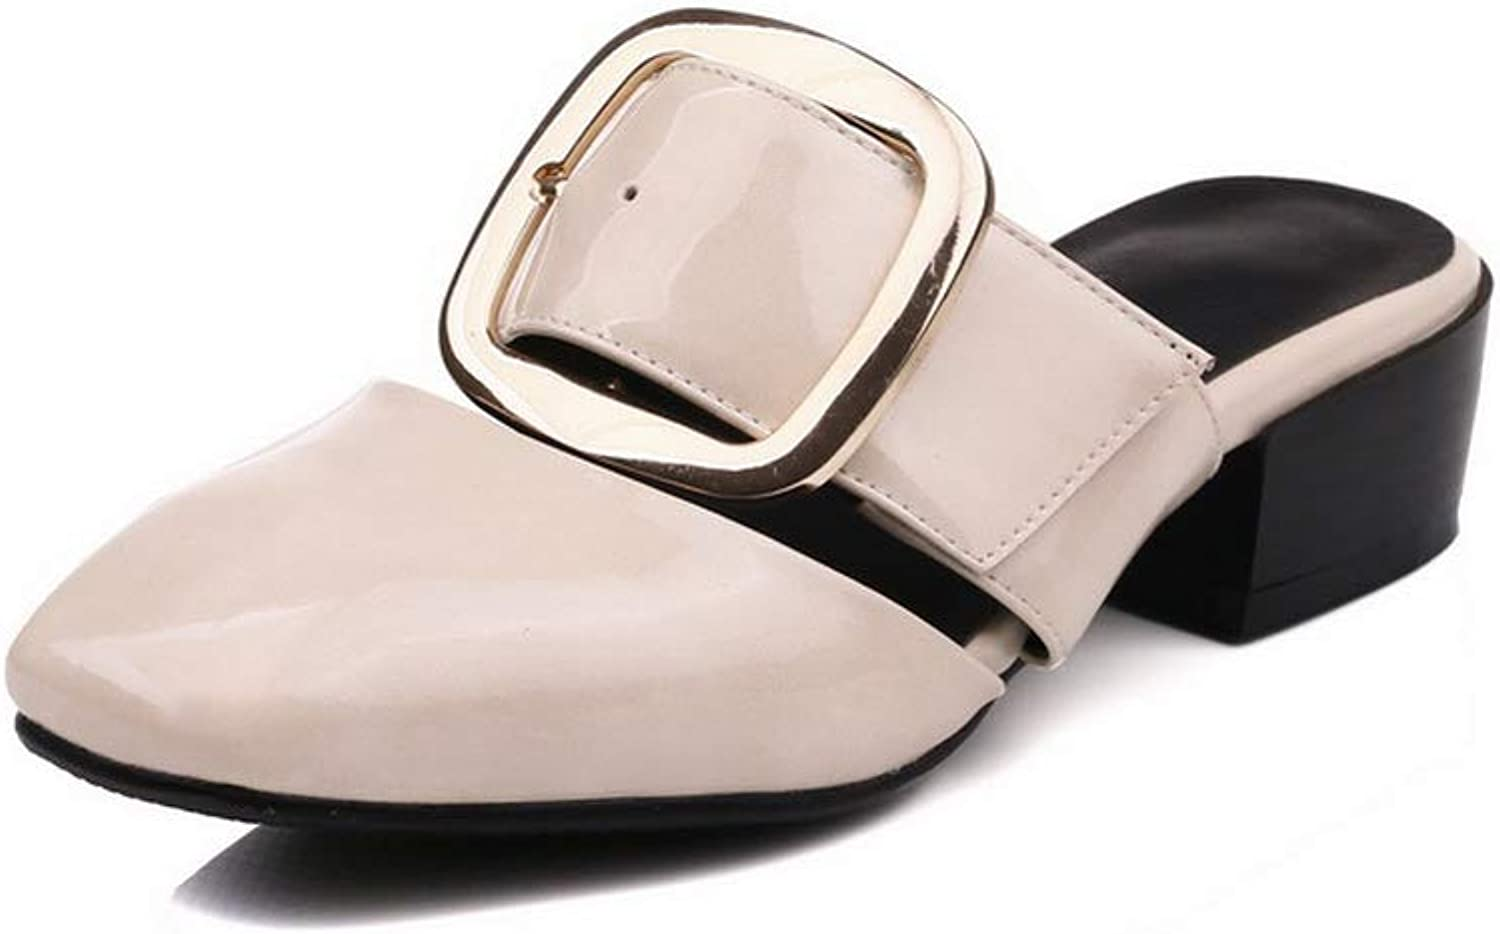 AdeeSu Womens Metal Buckles Chunky Heels Patent-Leather Pumps shoes SLC04389